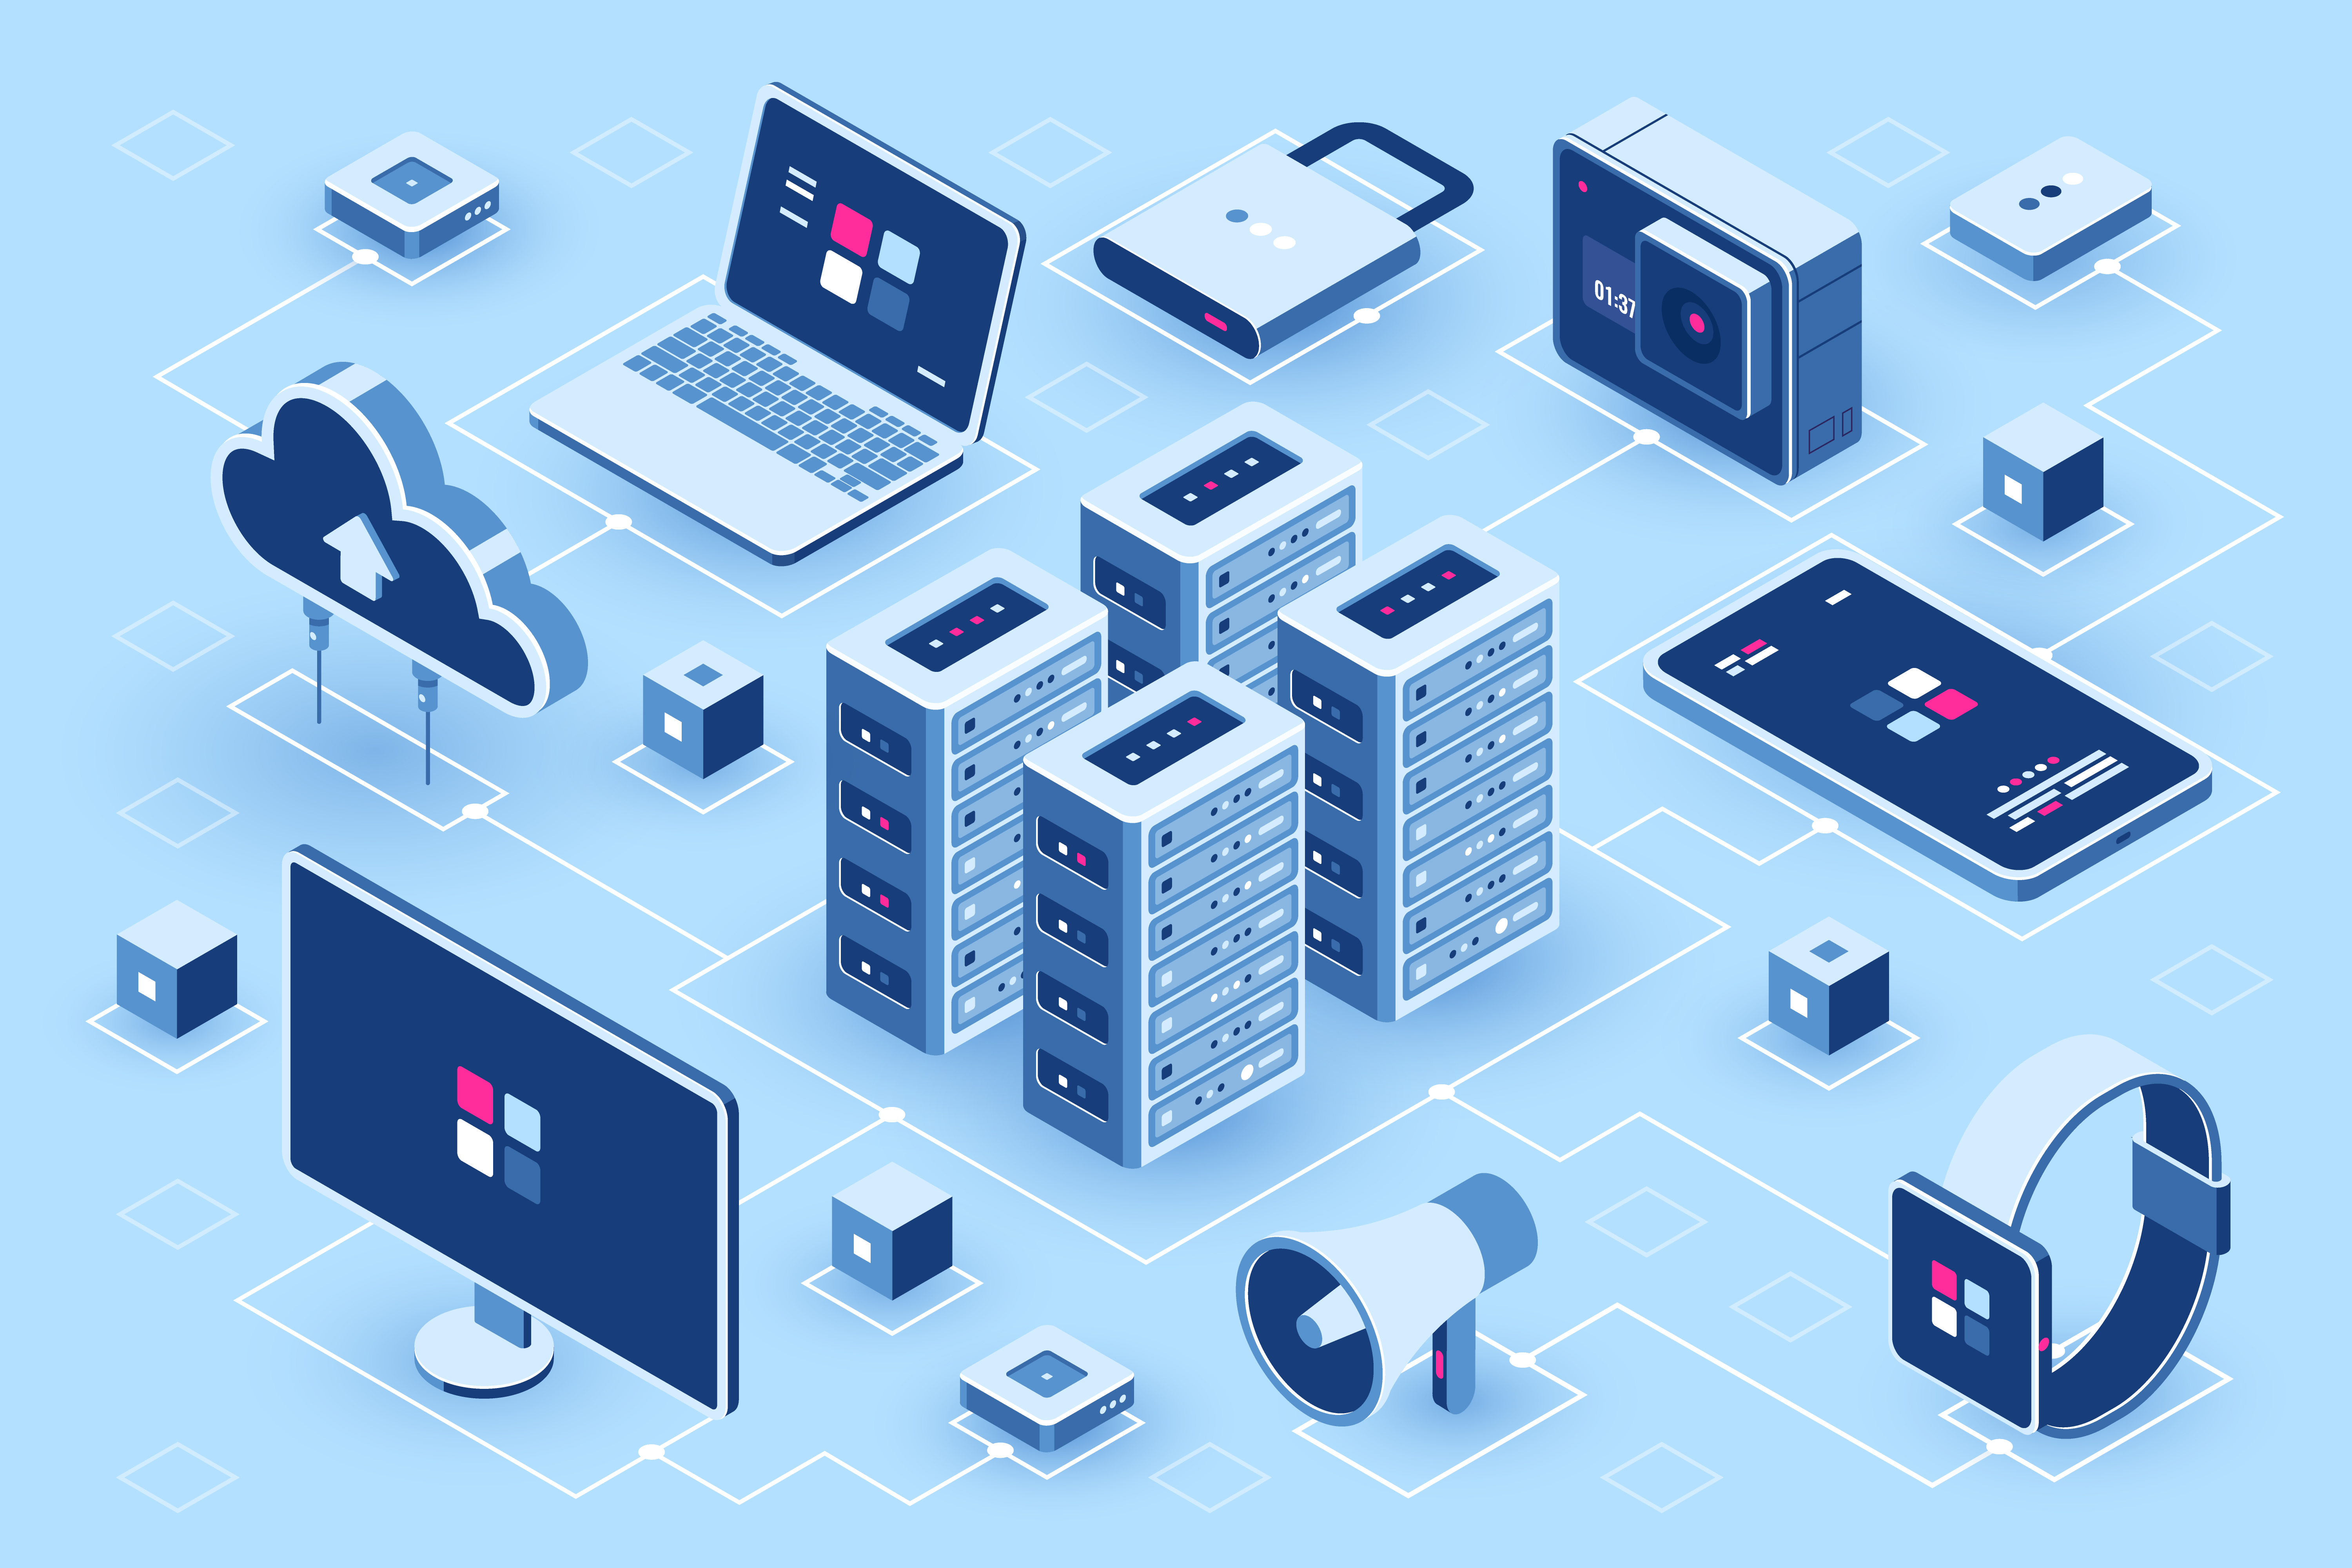 improved connectivity and big data